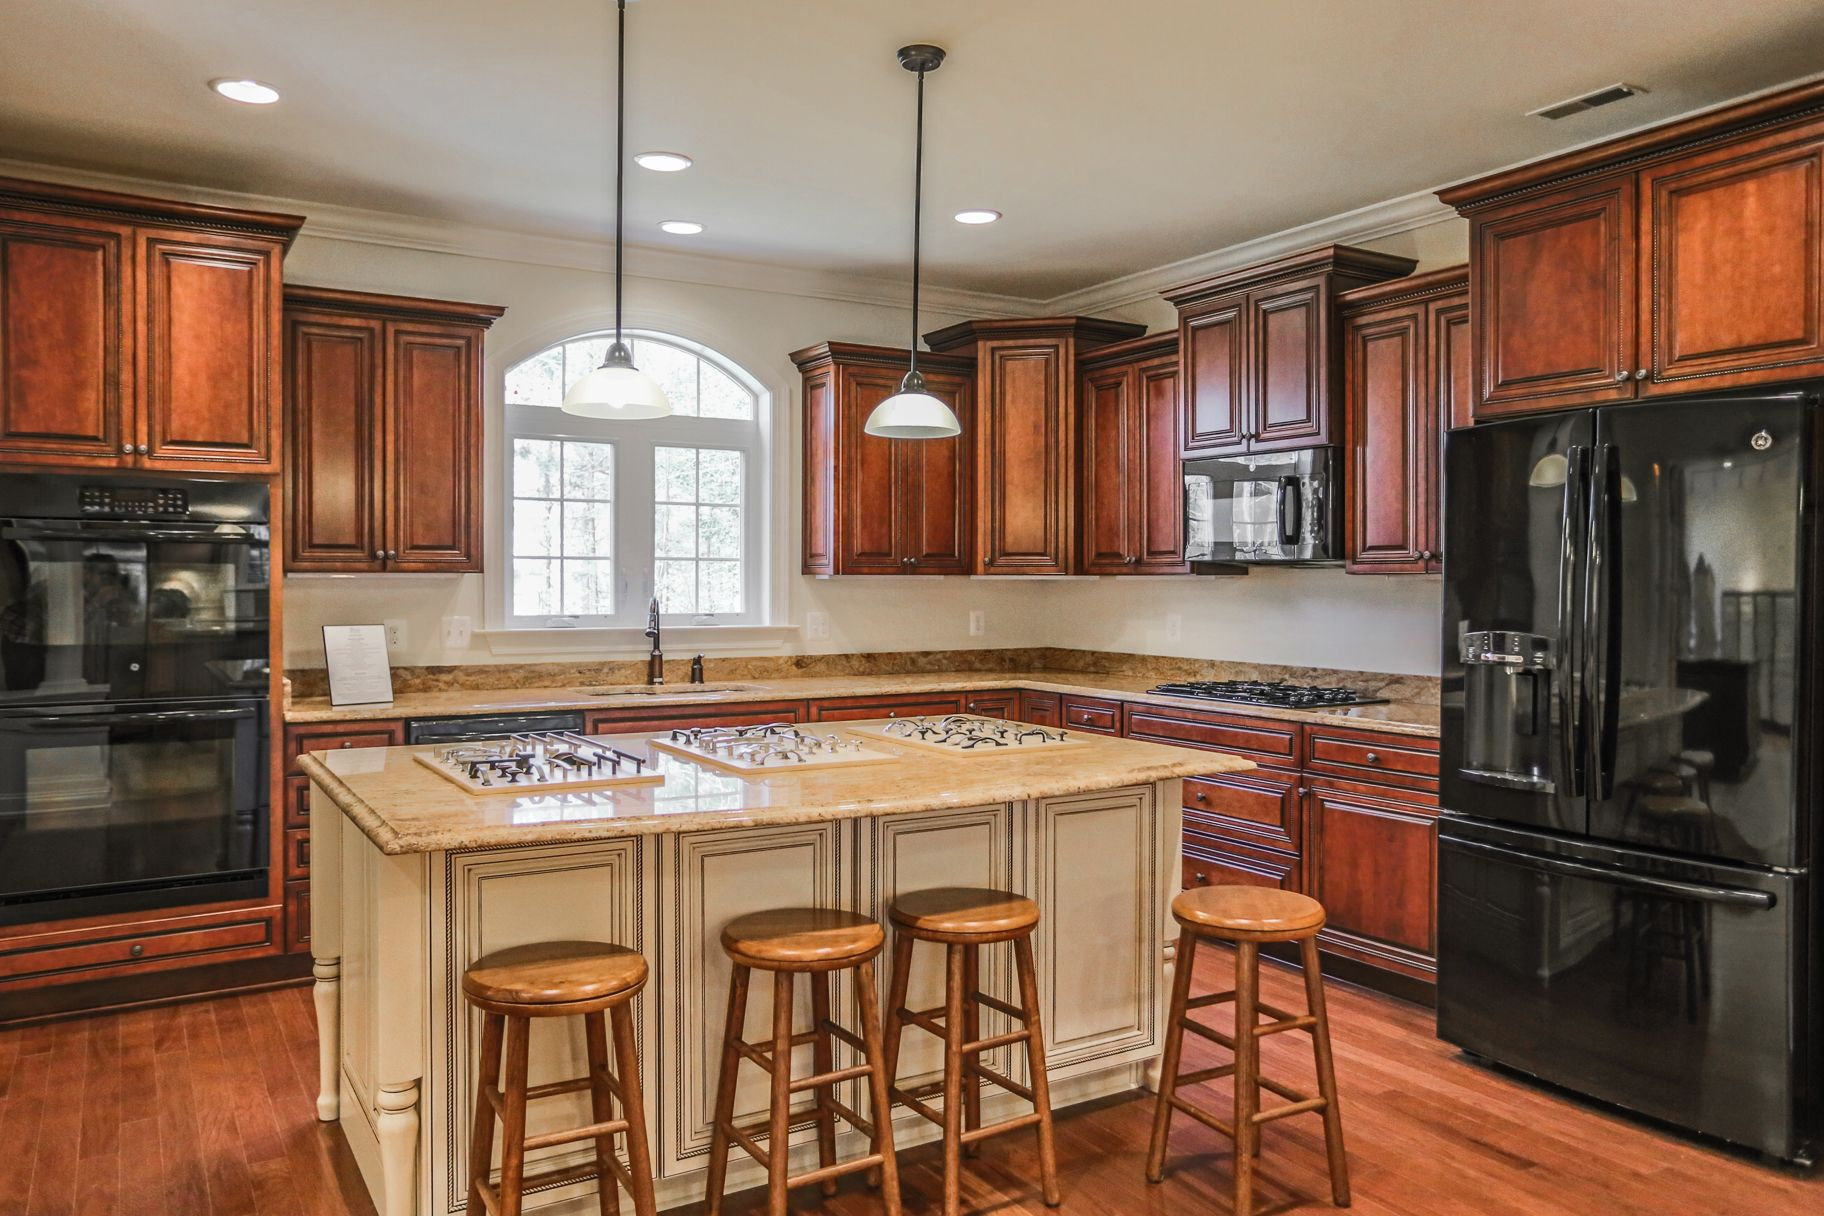 Quality Built Homes New Home Design Information Design Center Kitchen Design New Home Designs Design Your Home